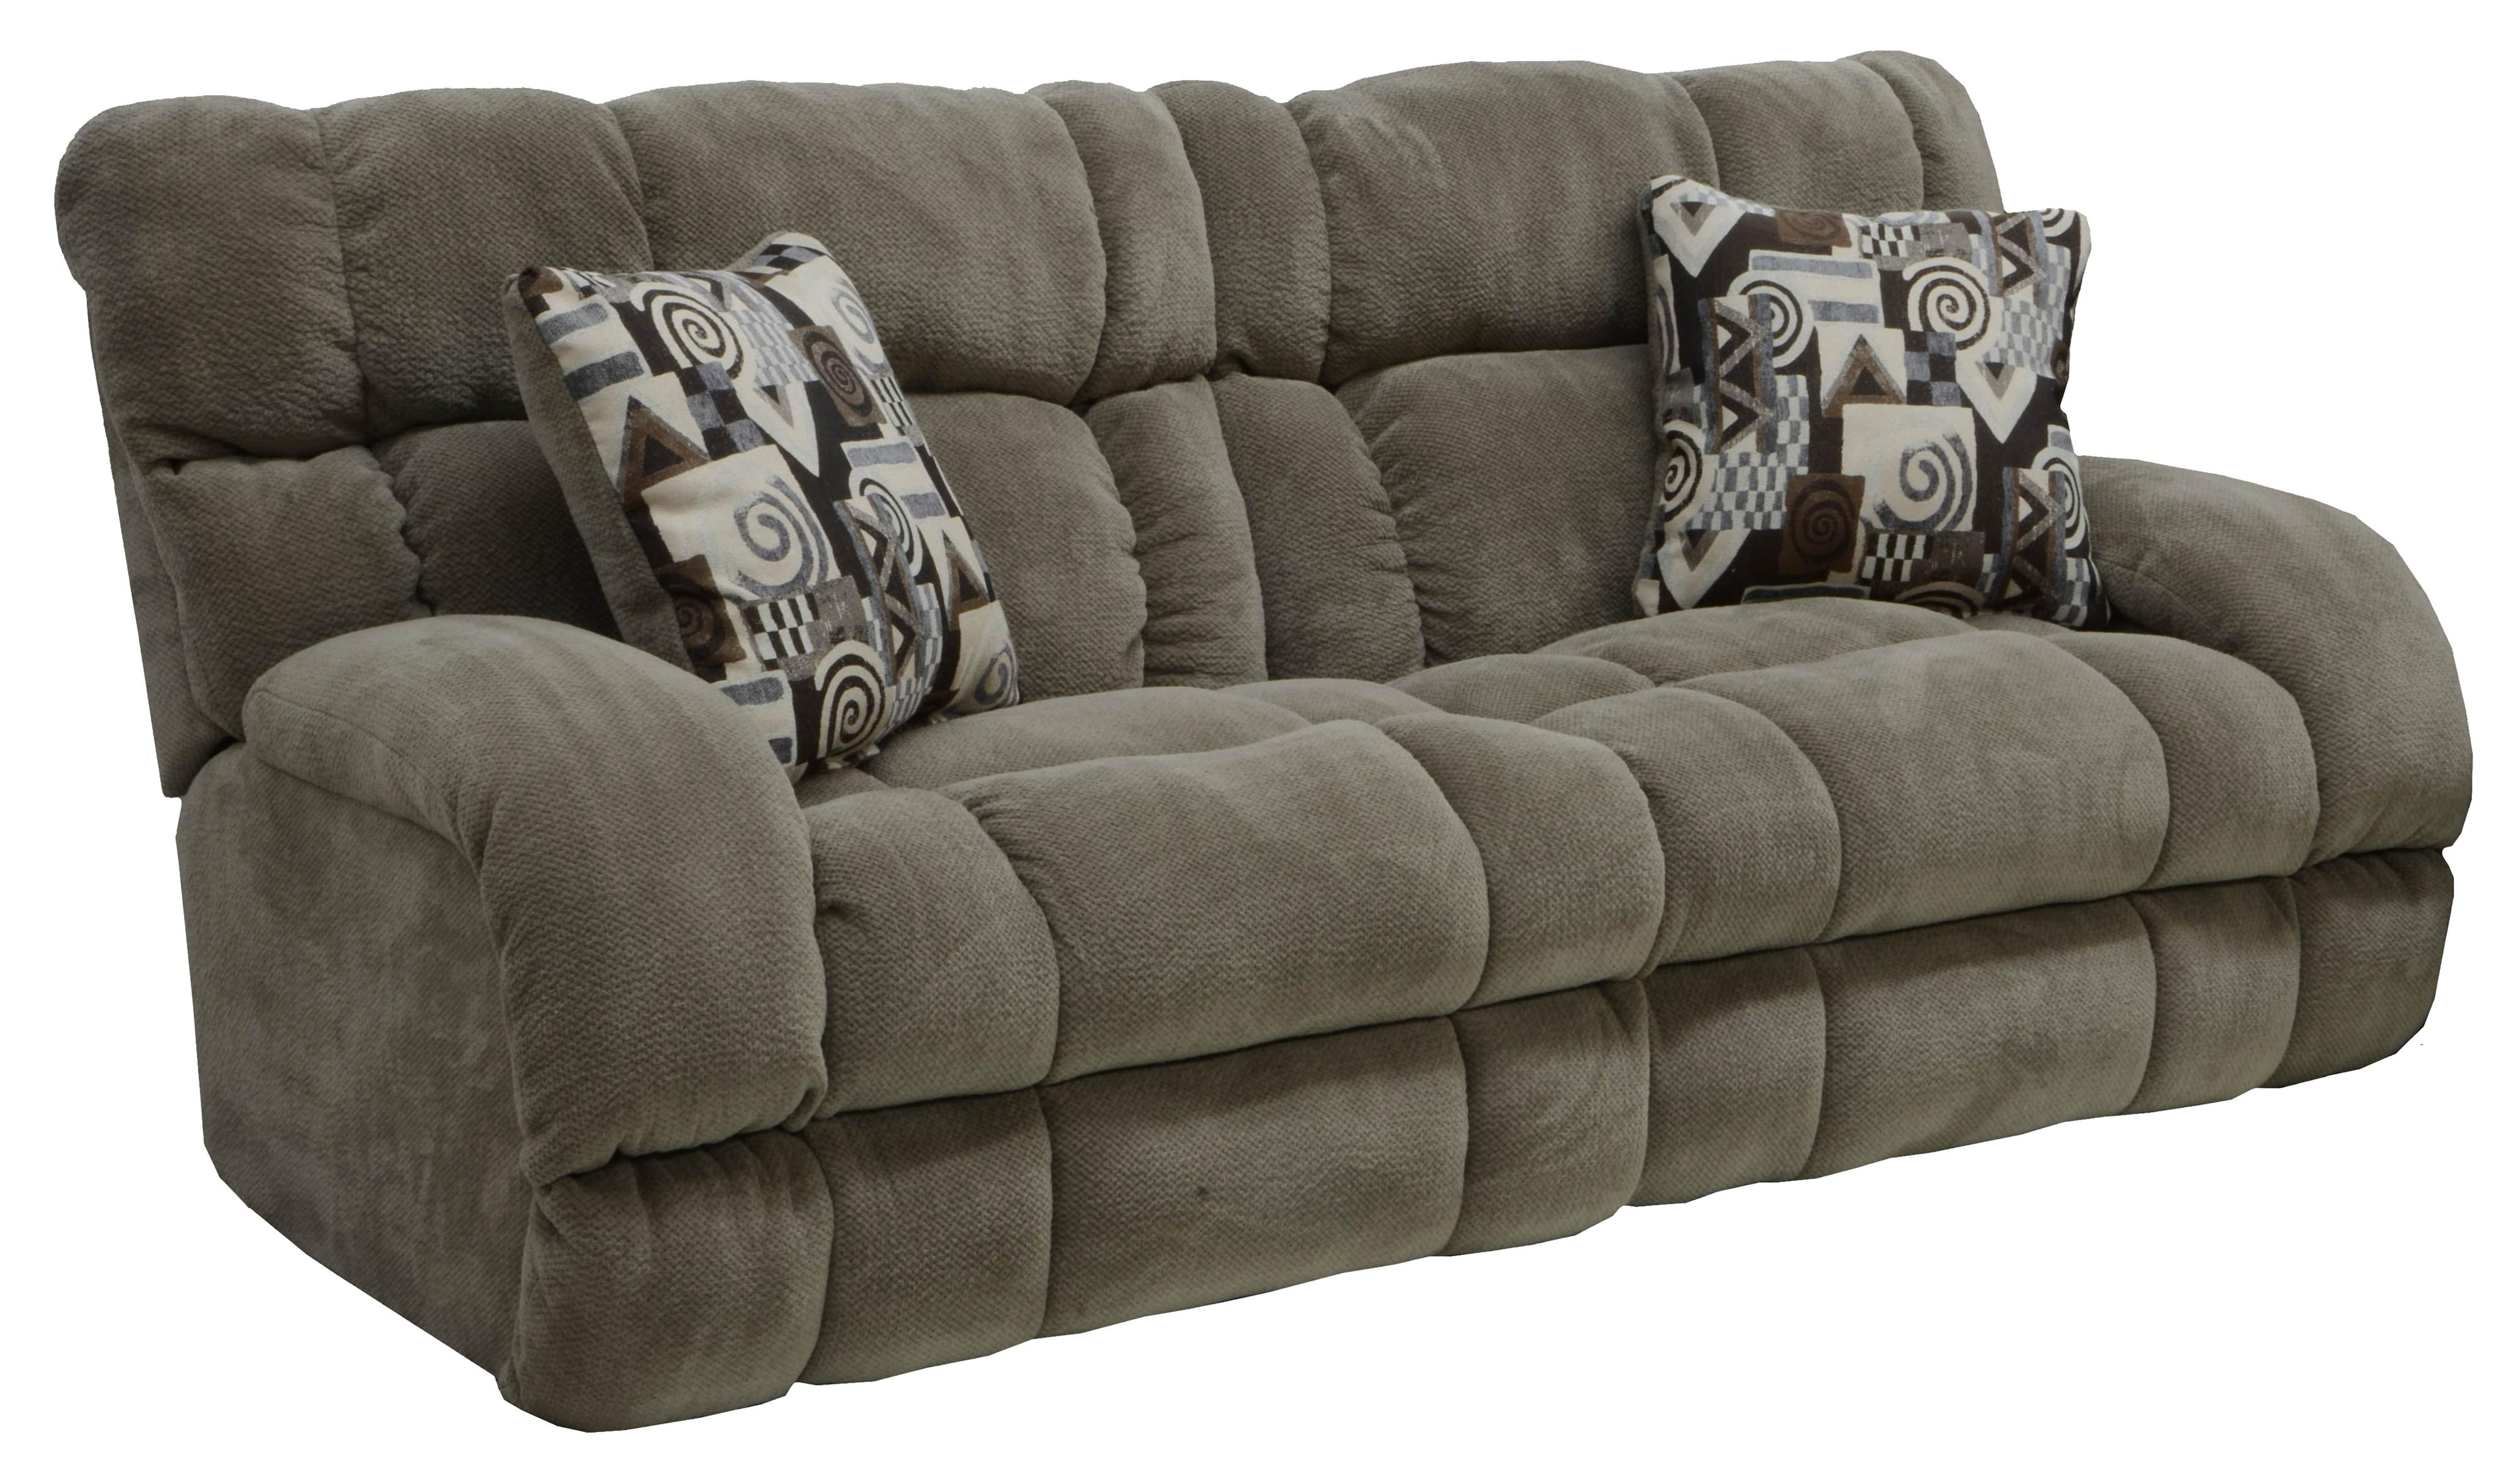 Catnapper BRYCE Lay Flat Reclining Sofa with Wide Seats EFO